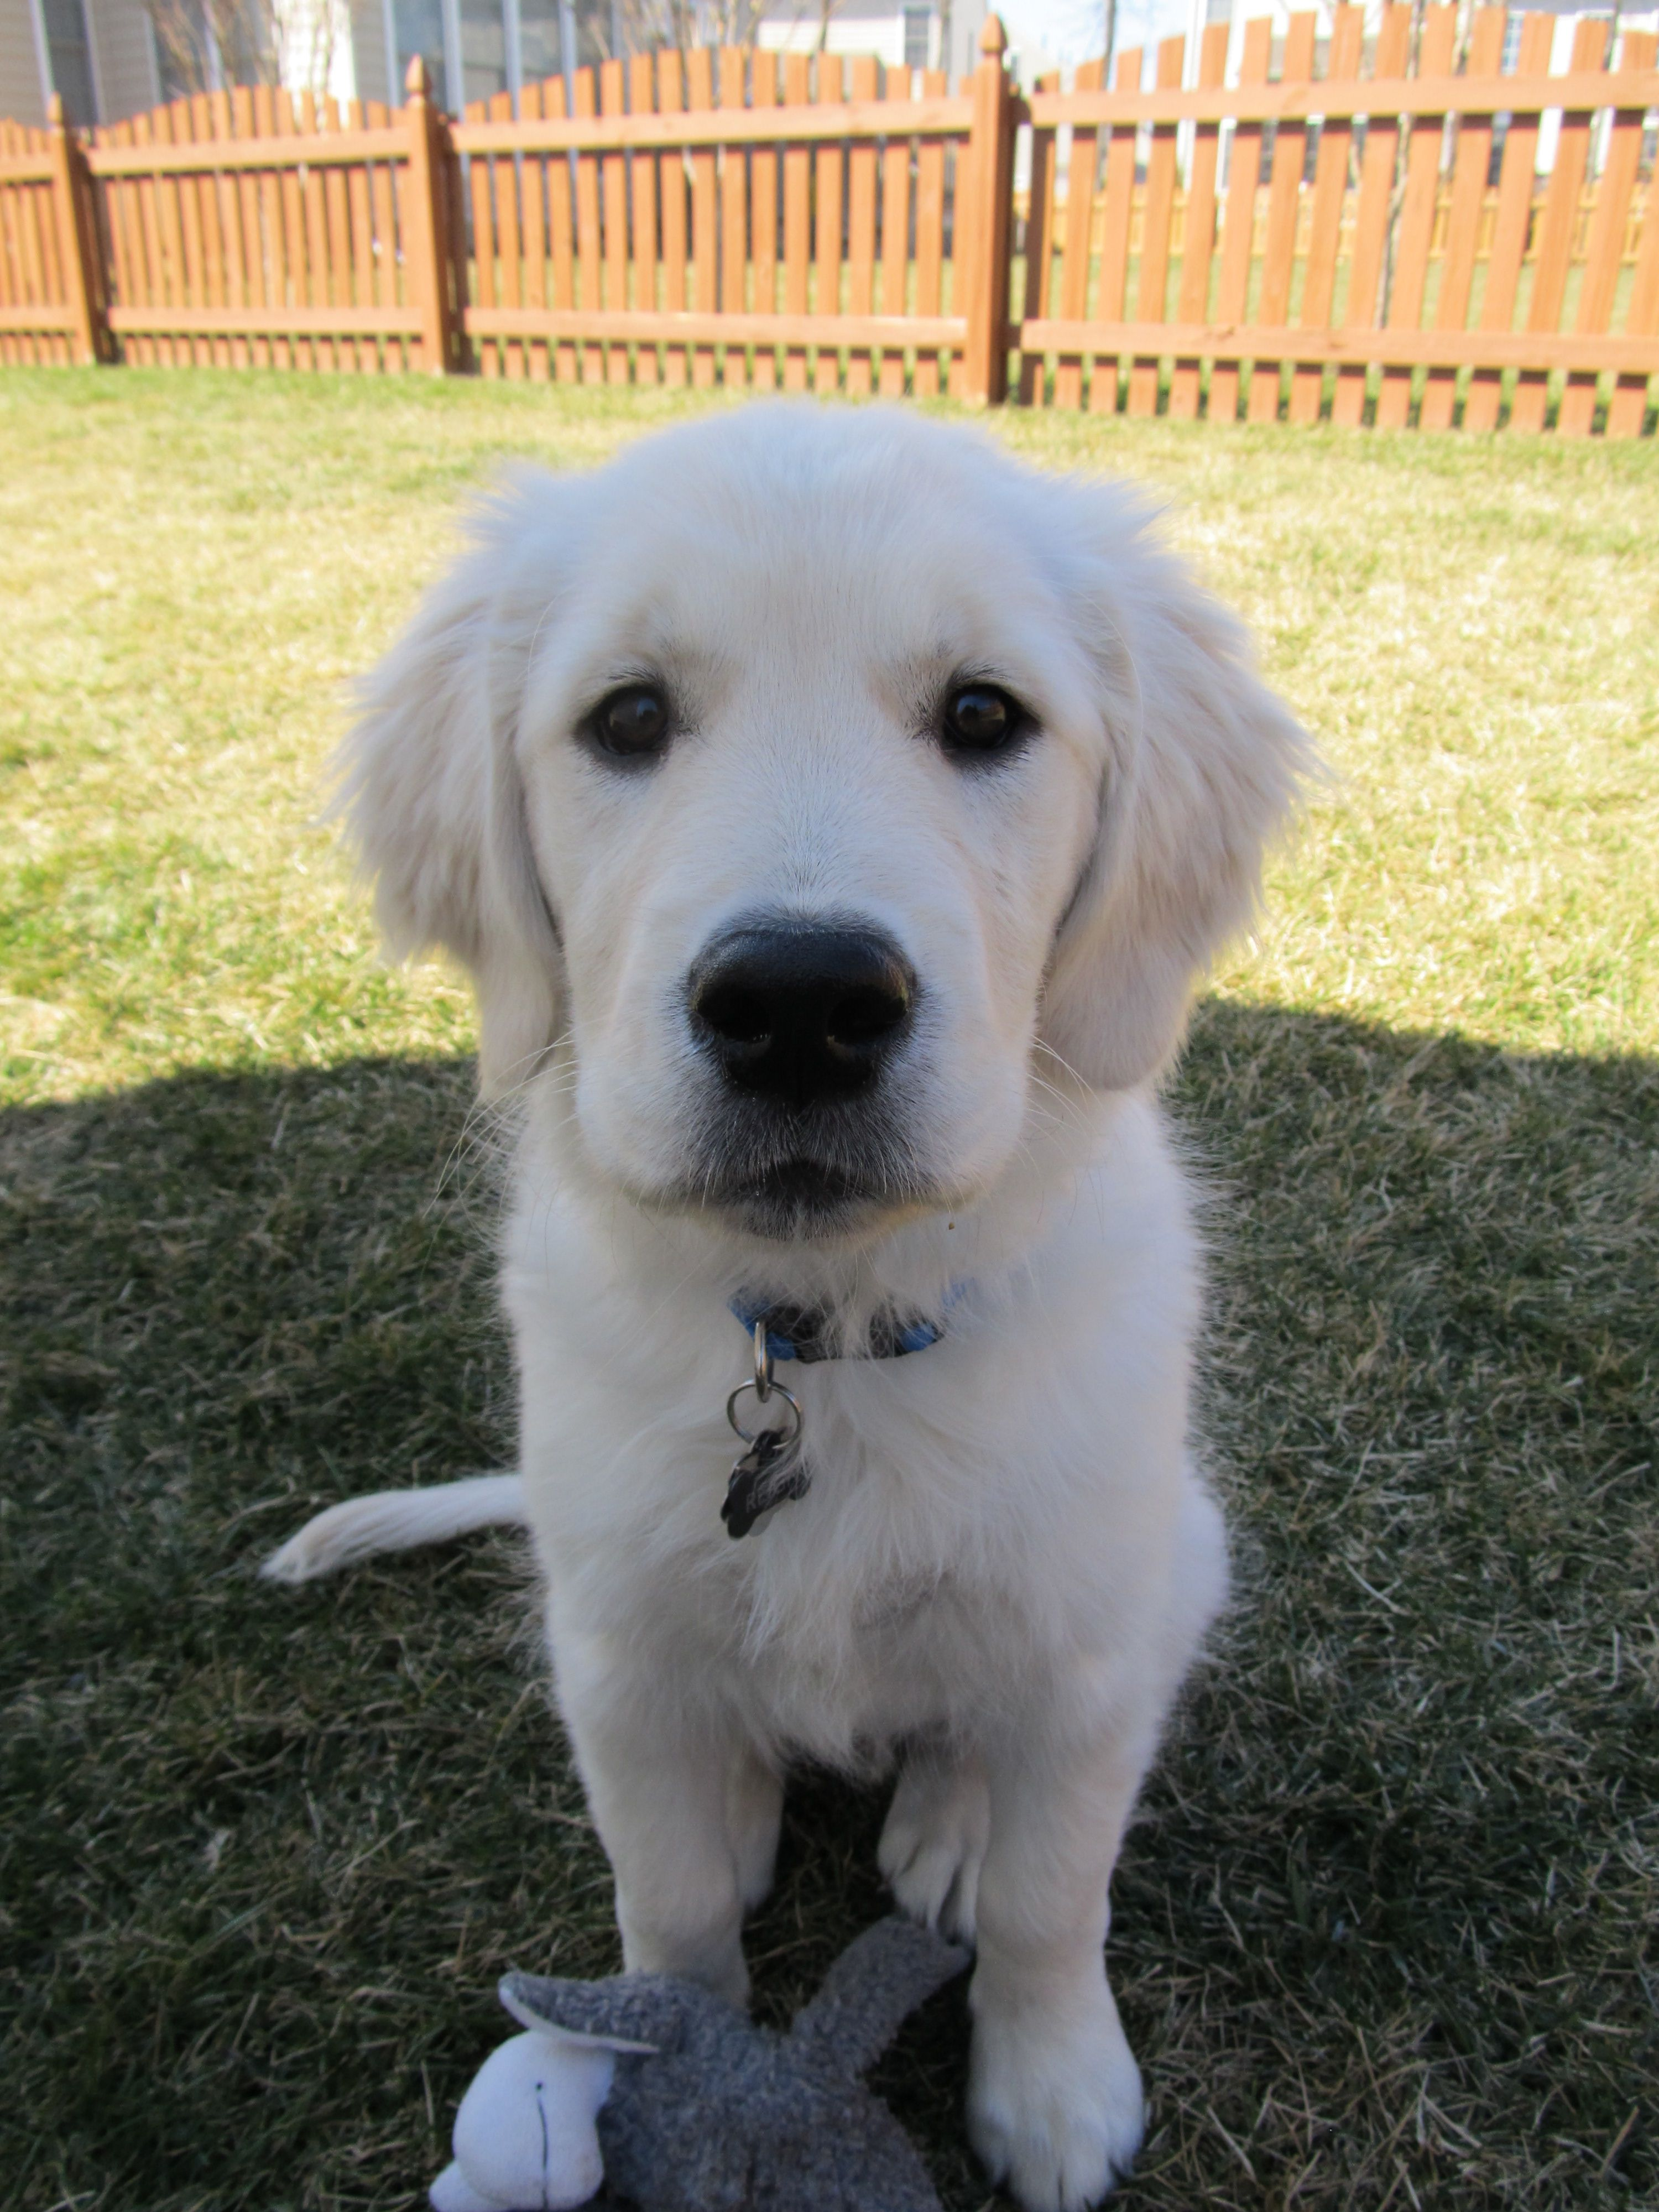 Reign 4 months Puppies for sale, Dog training near me